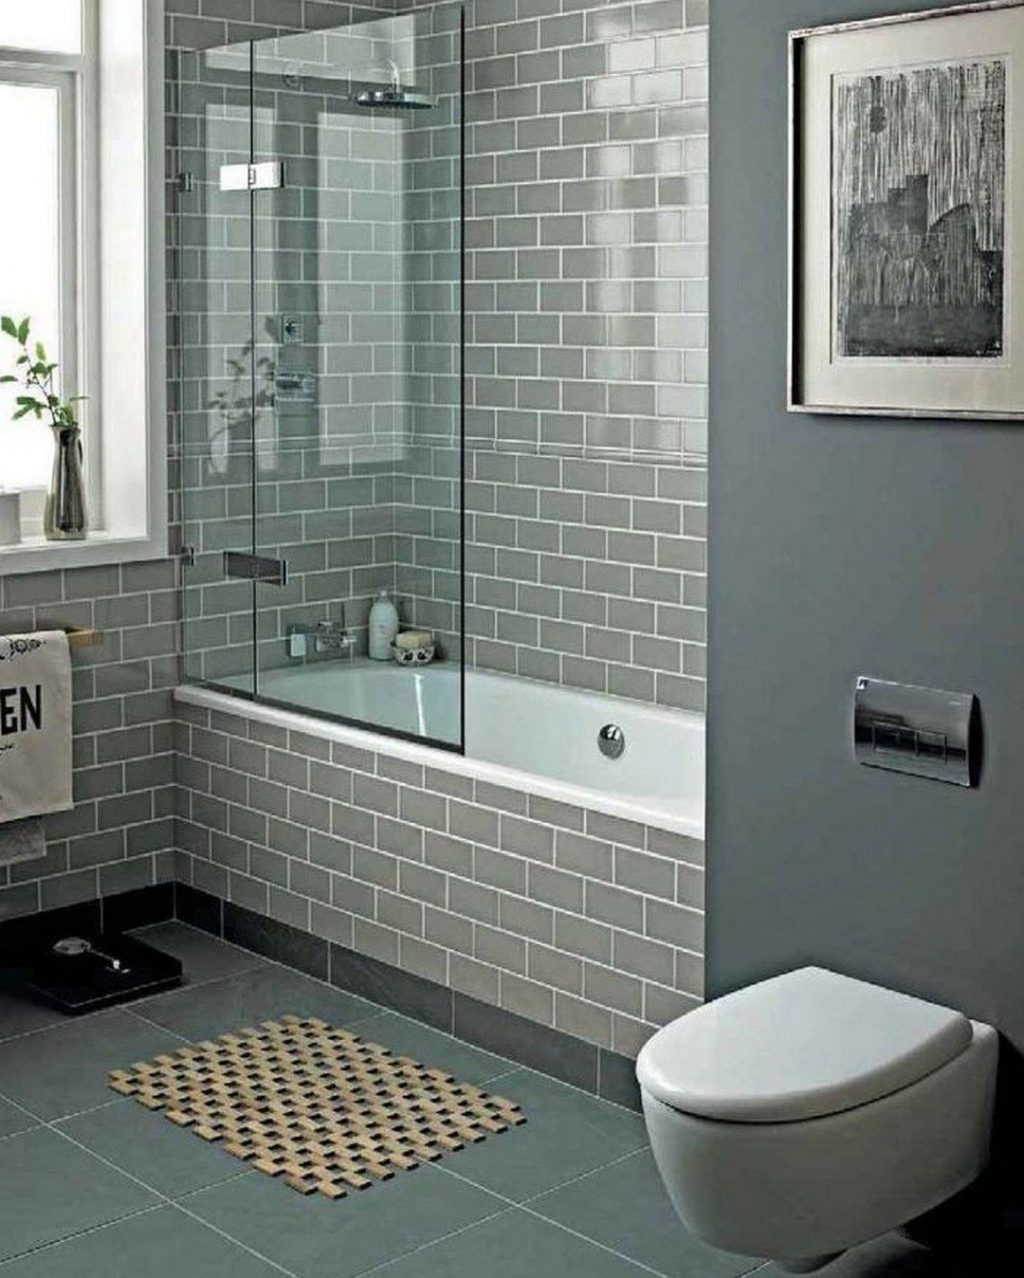 99 Small Bathroom Tub Shower Combo Remodeling Ideas 79 Tap The